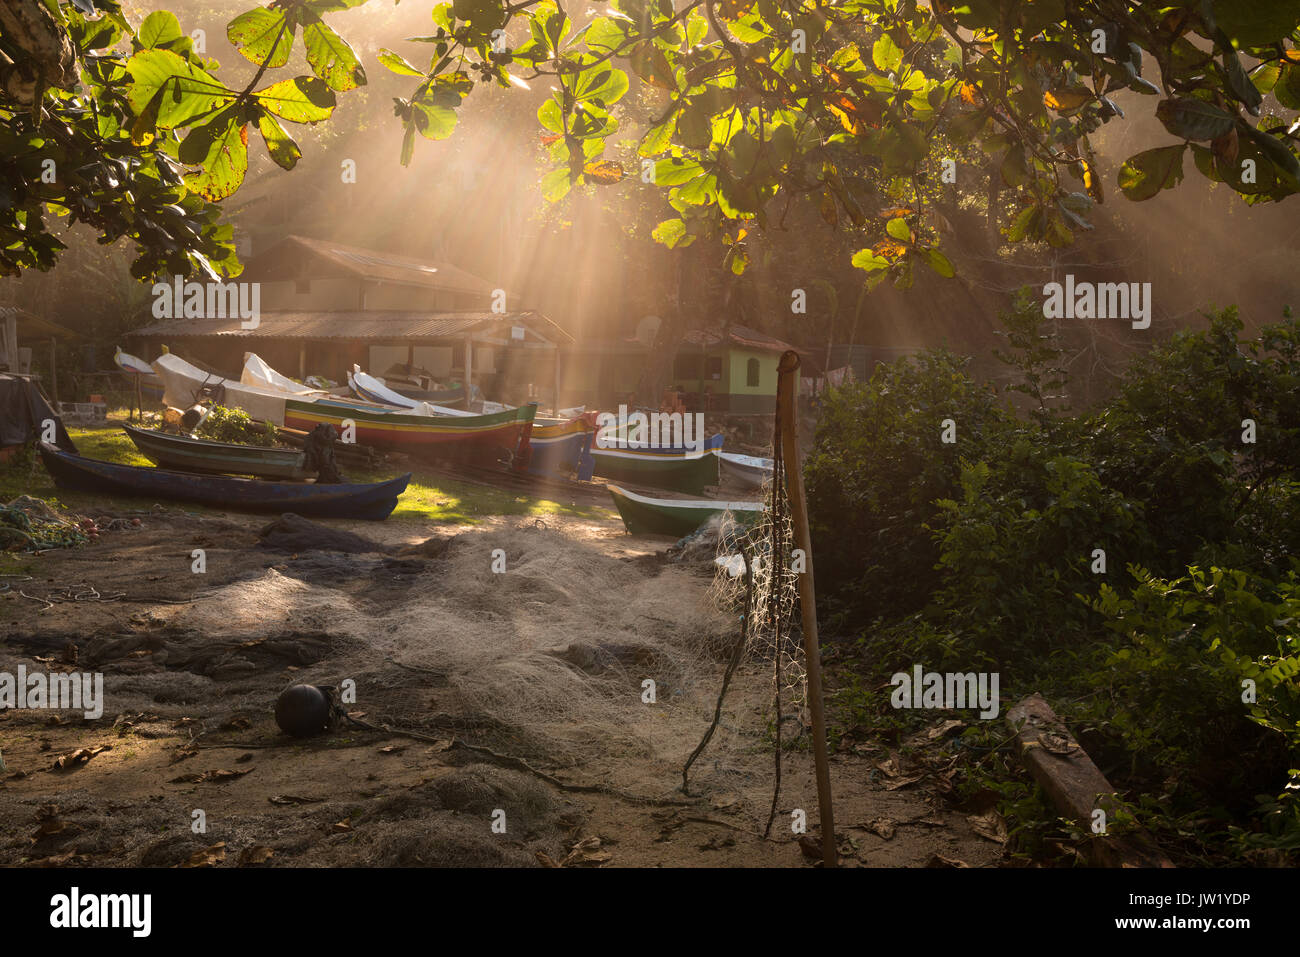 Traditional fishing outpost in Ilhabela, Brazil Stock Photo